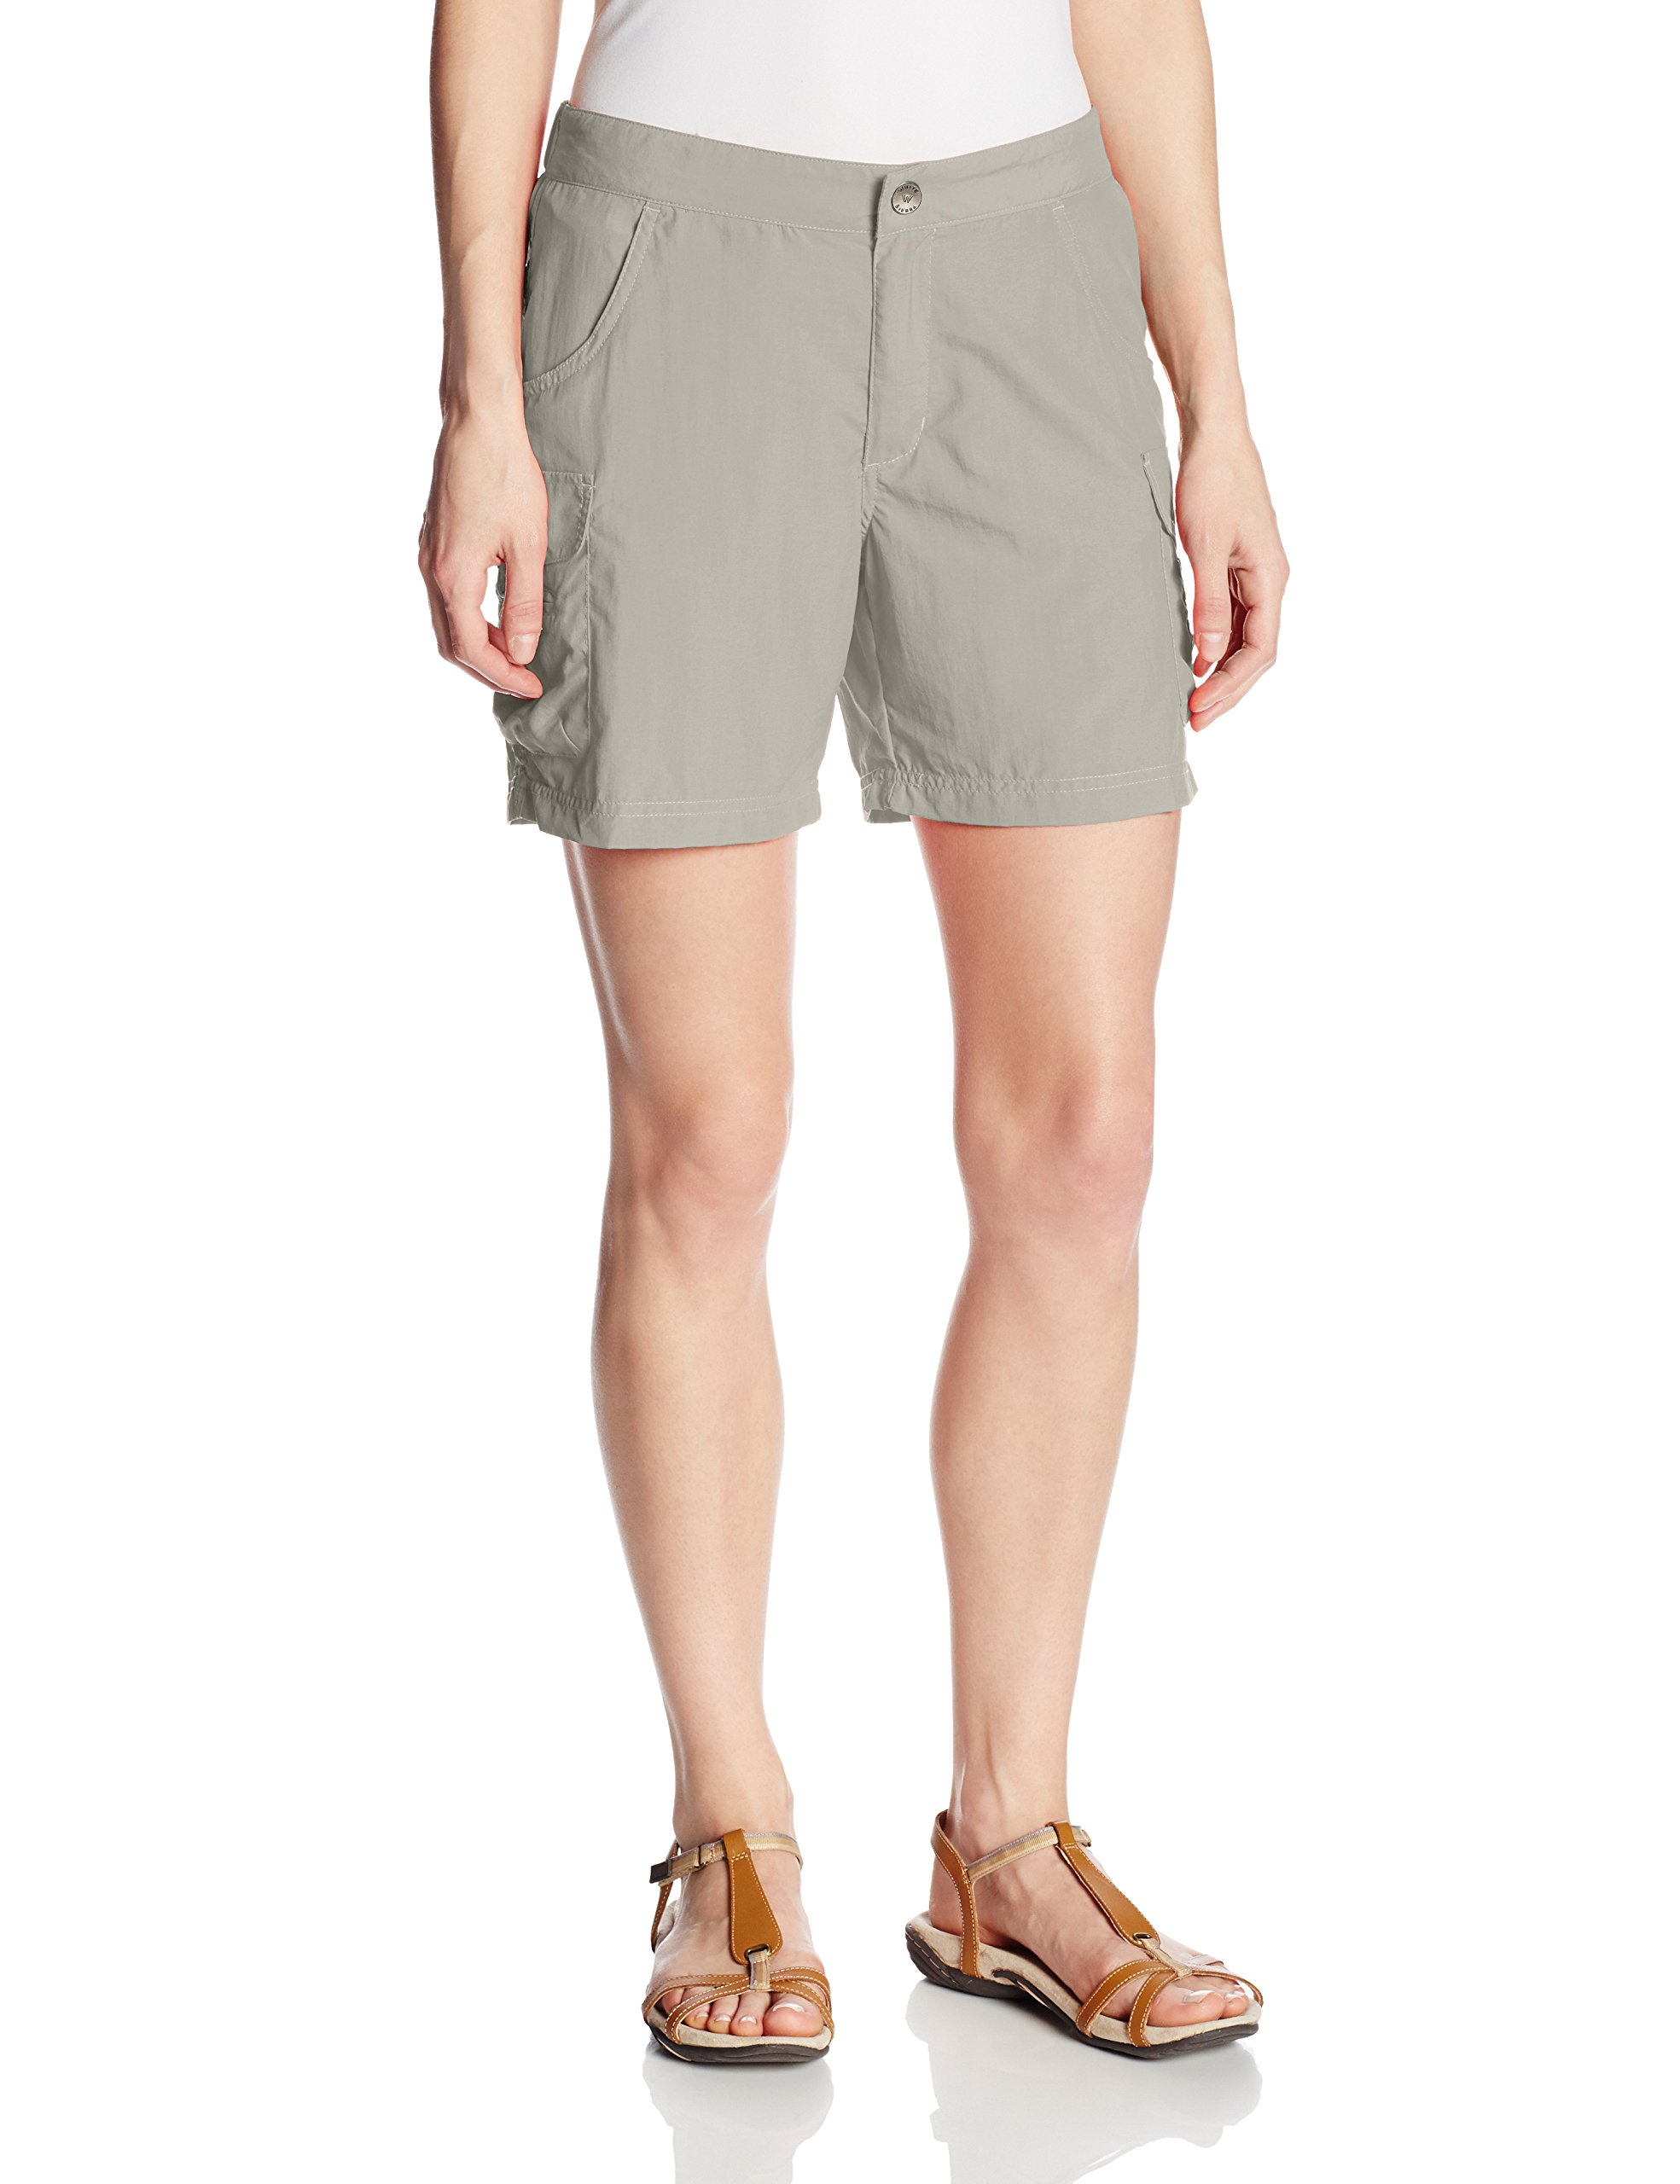 White Sierra Crystal Cove River Shorts, Pale Taupe, Small